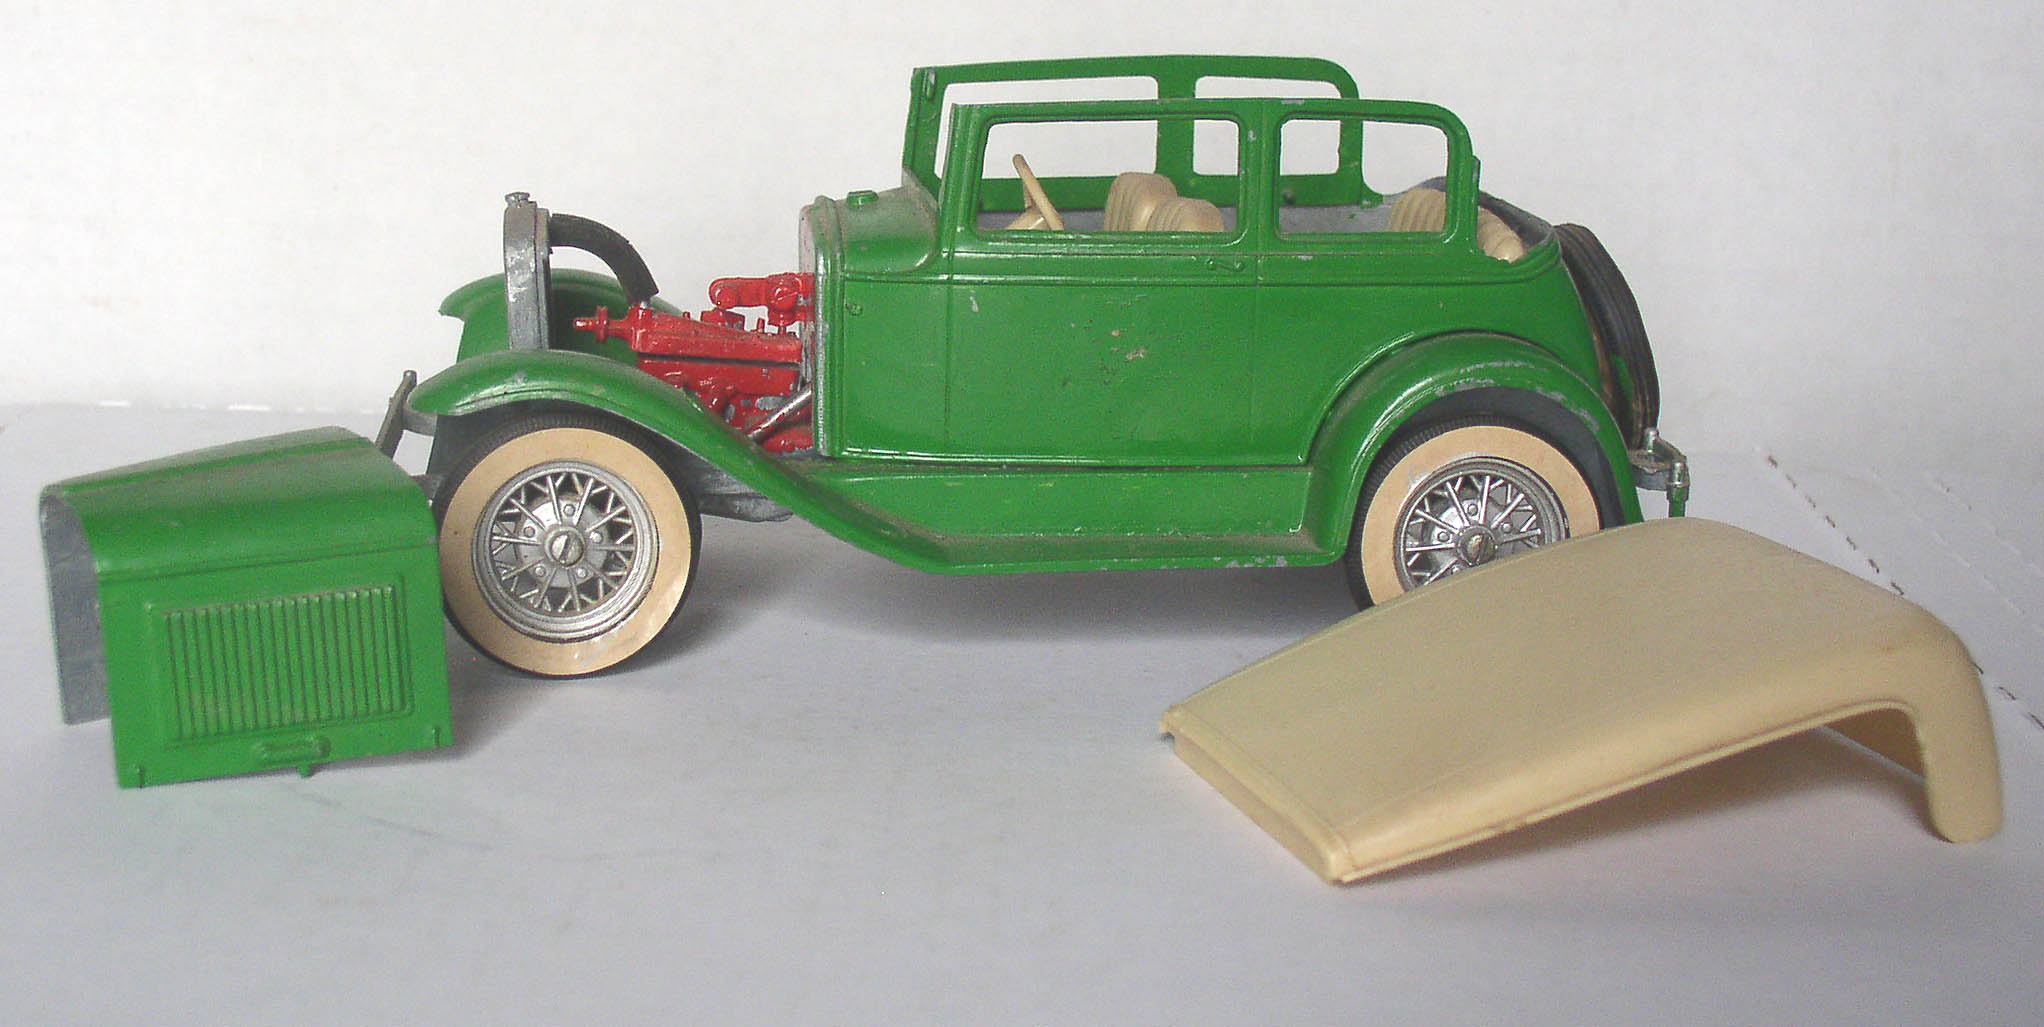 Hubley metal model car kits 12